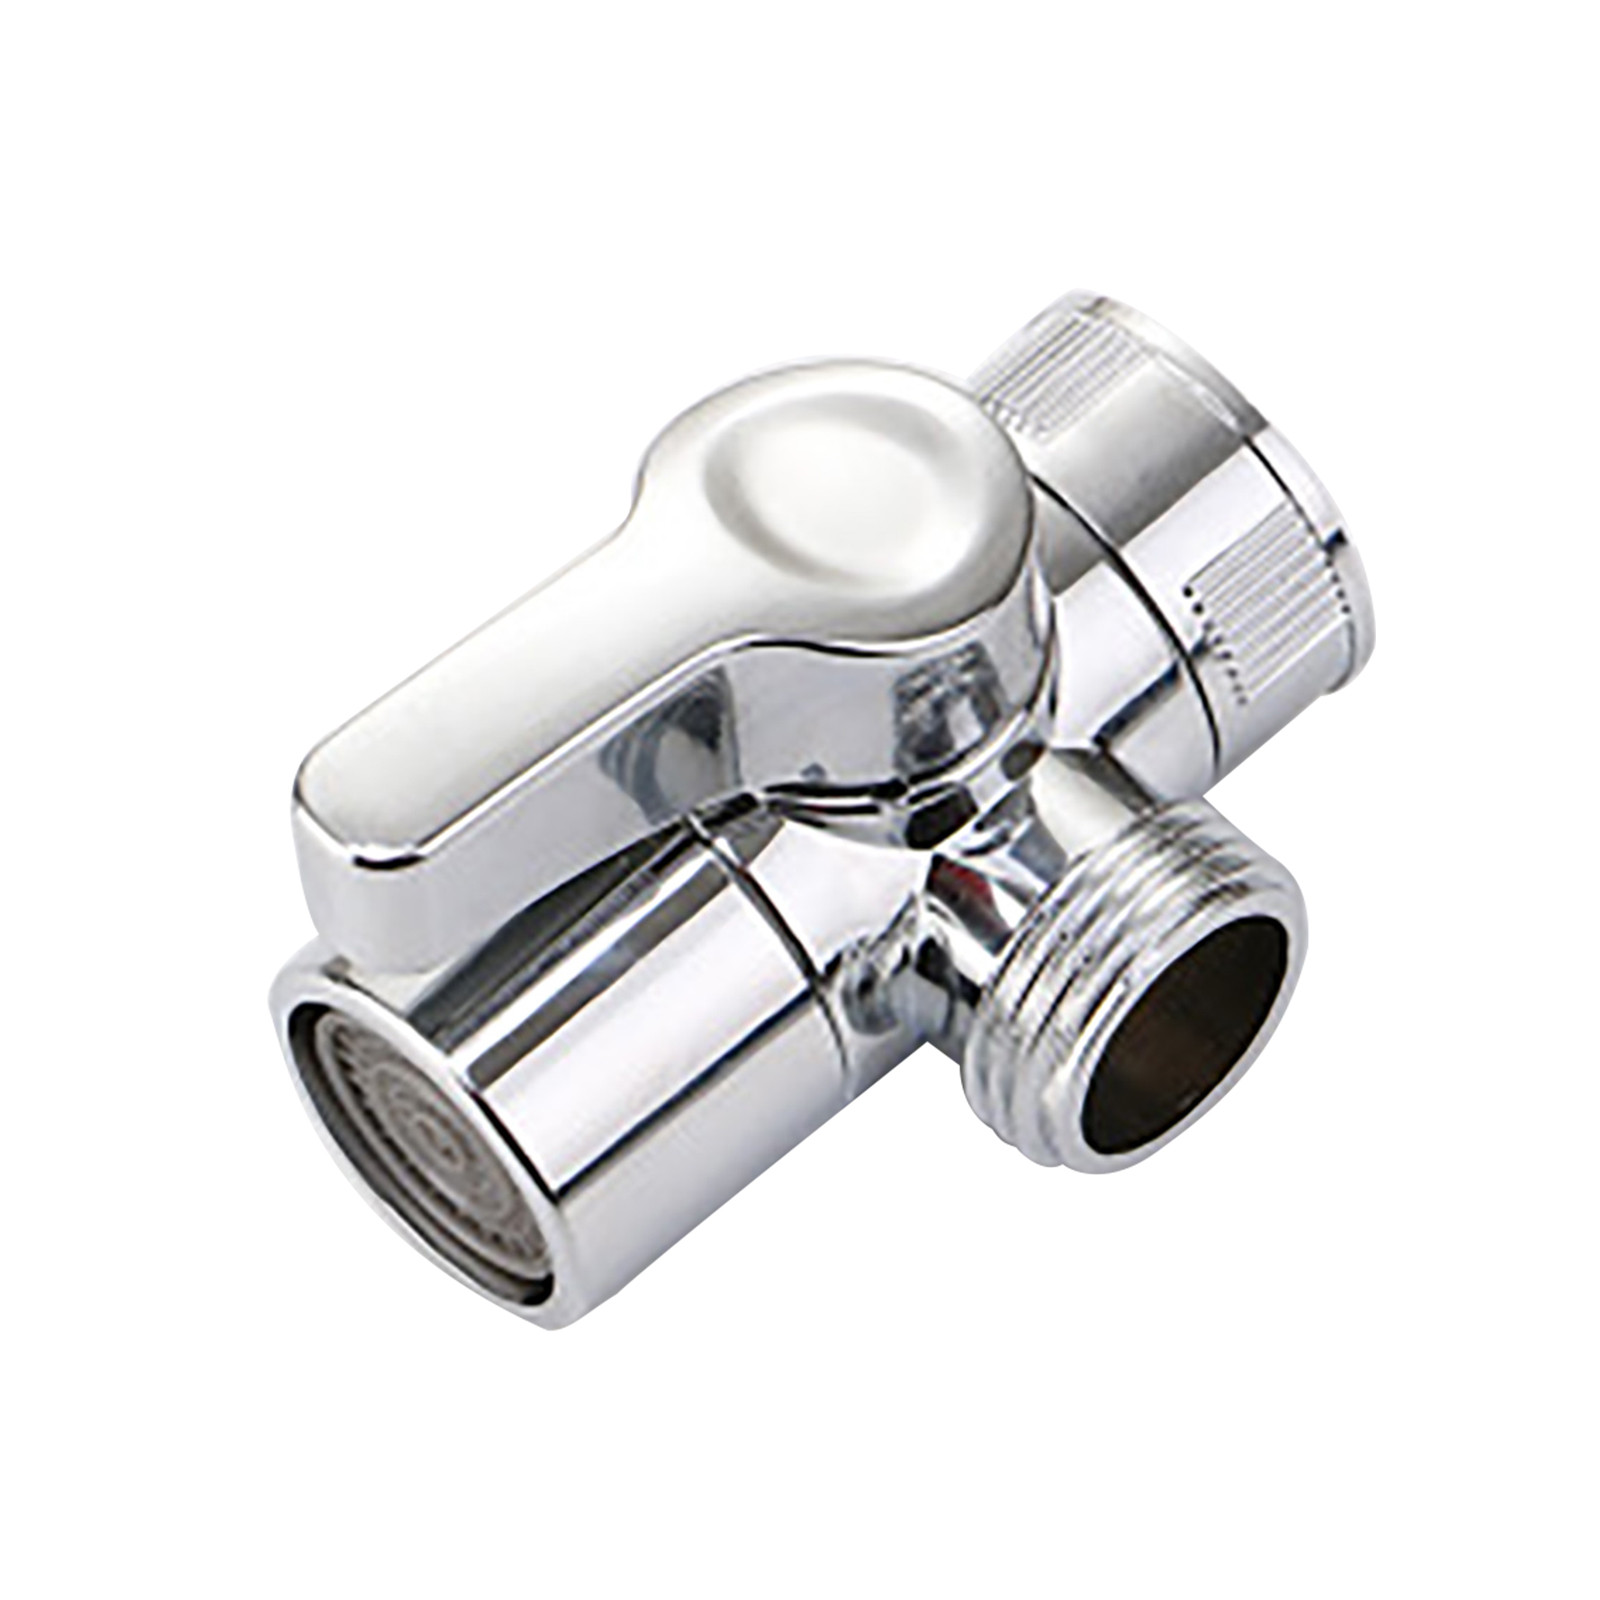 H31a3d7d99df5489581c865e8d8bbbeb48 Bathroom Wash Face Basin Water Tap External Shower Head Toilet Hold Filter Flexible Hair Washing Faucet Rinser Extension Set #40